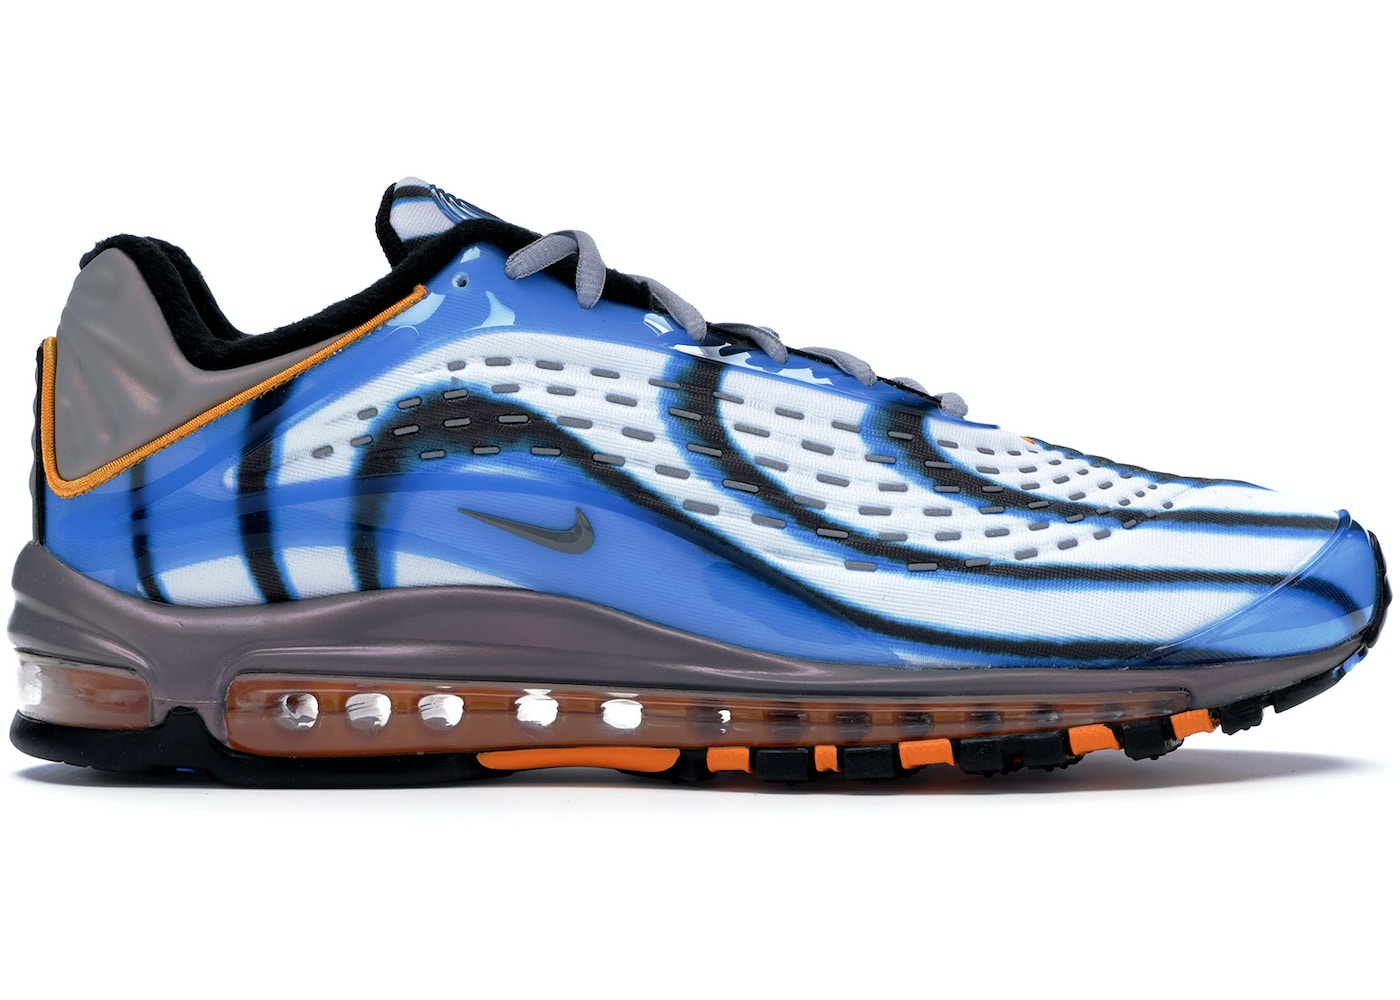 52f034b2be1 Nike Air Max Other Shoes - Average Sale Price